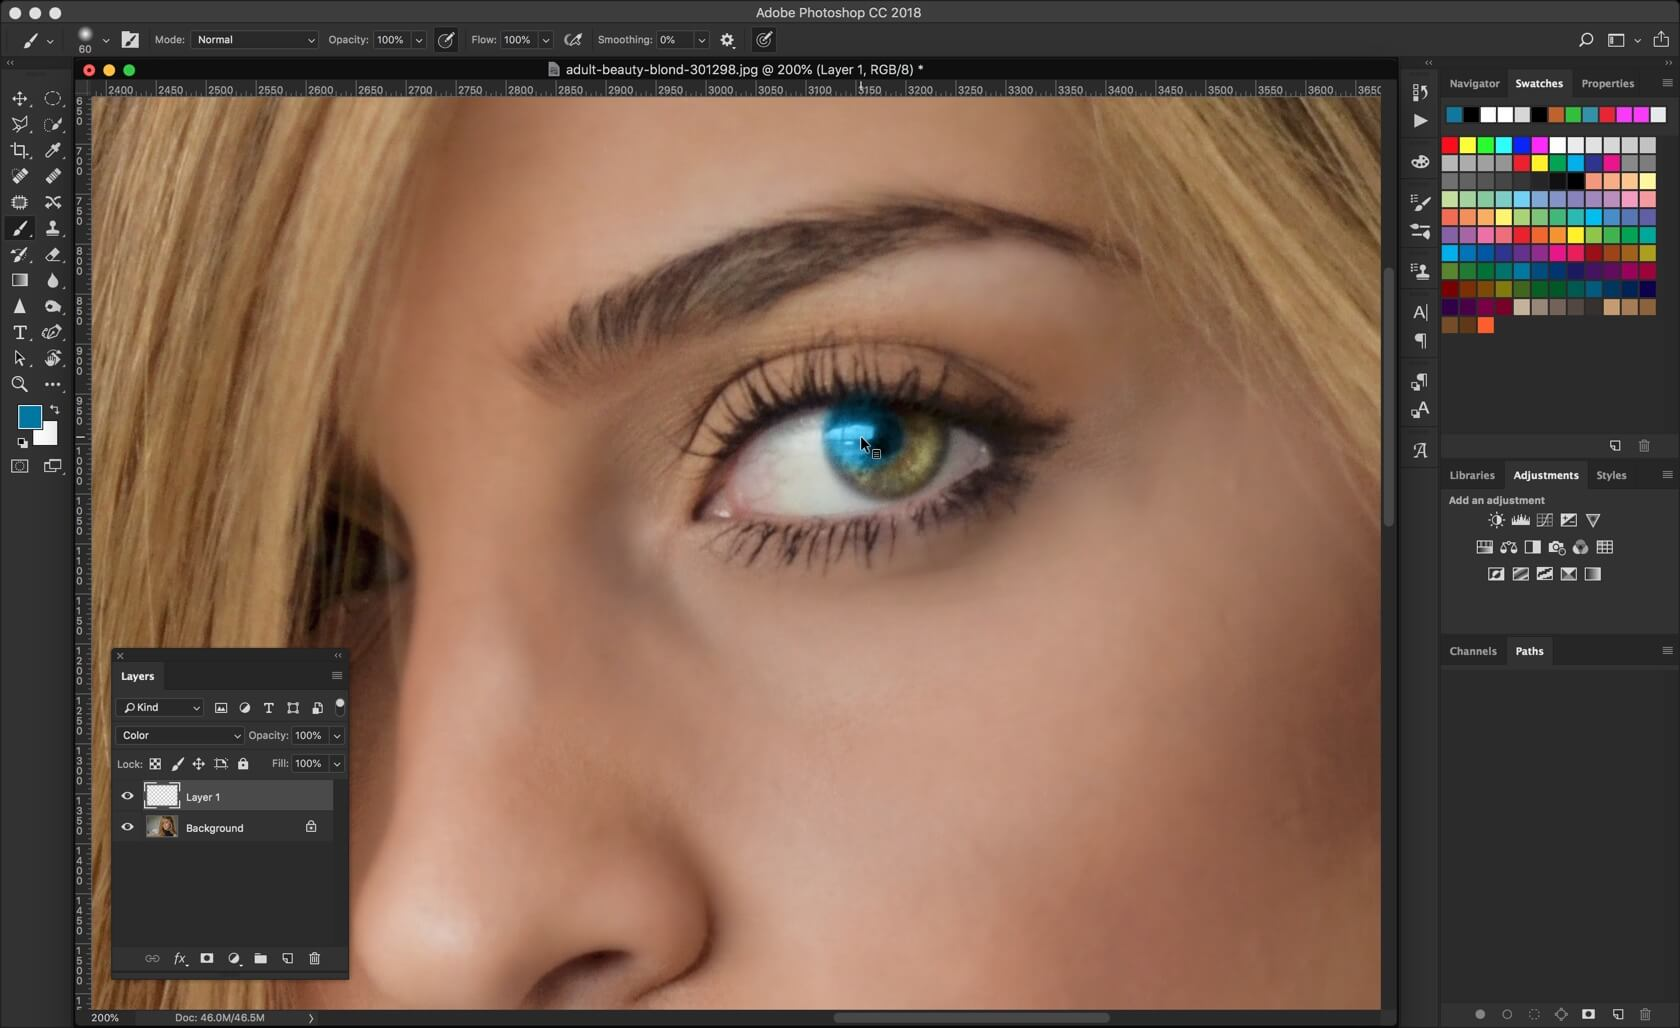 3-1 - 2 Steps to Change Eye Color in Photoshop